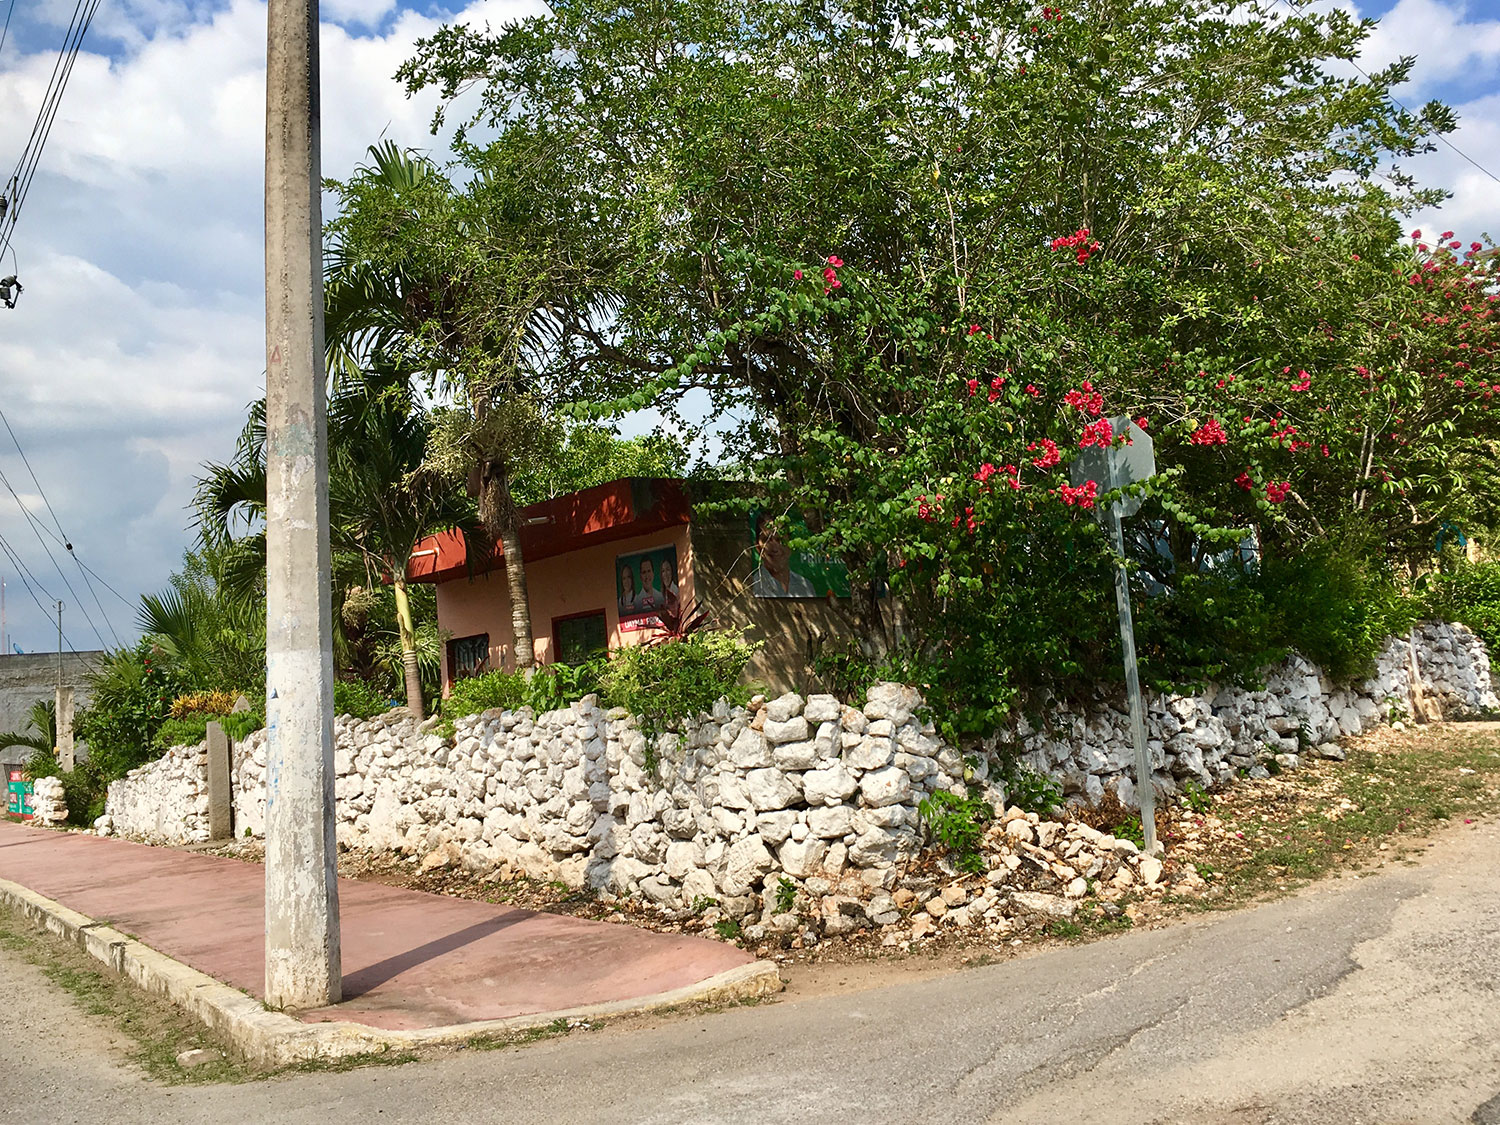 Typical village houses of Yucatán, with a stone wall.